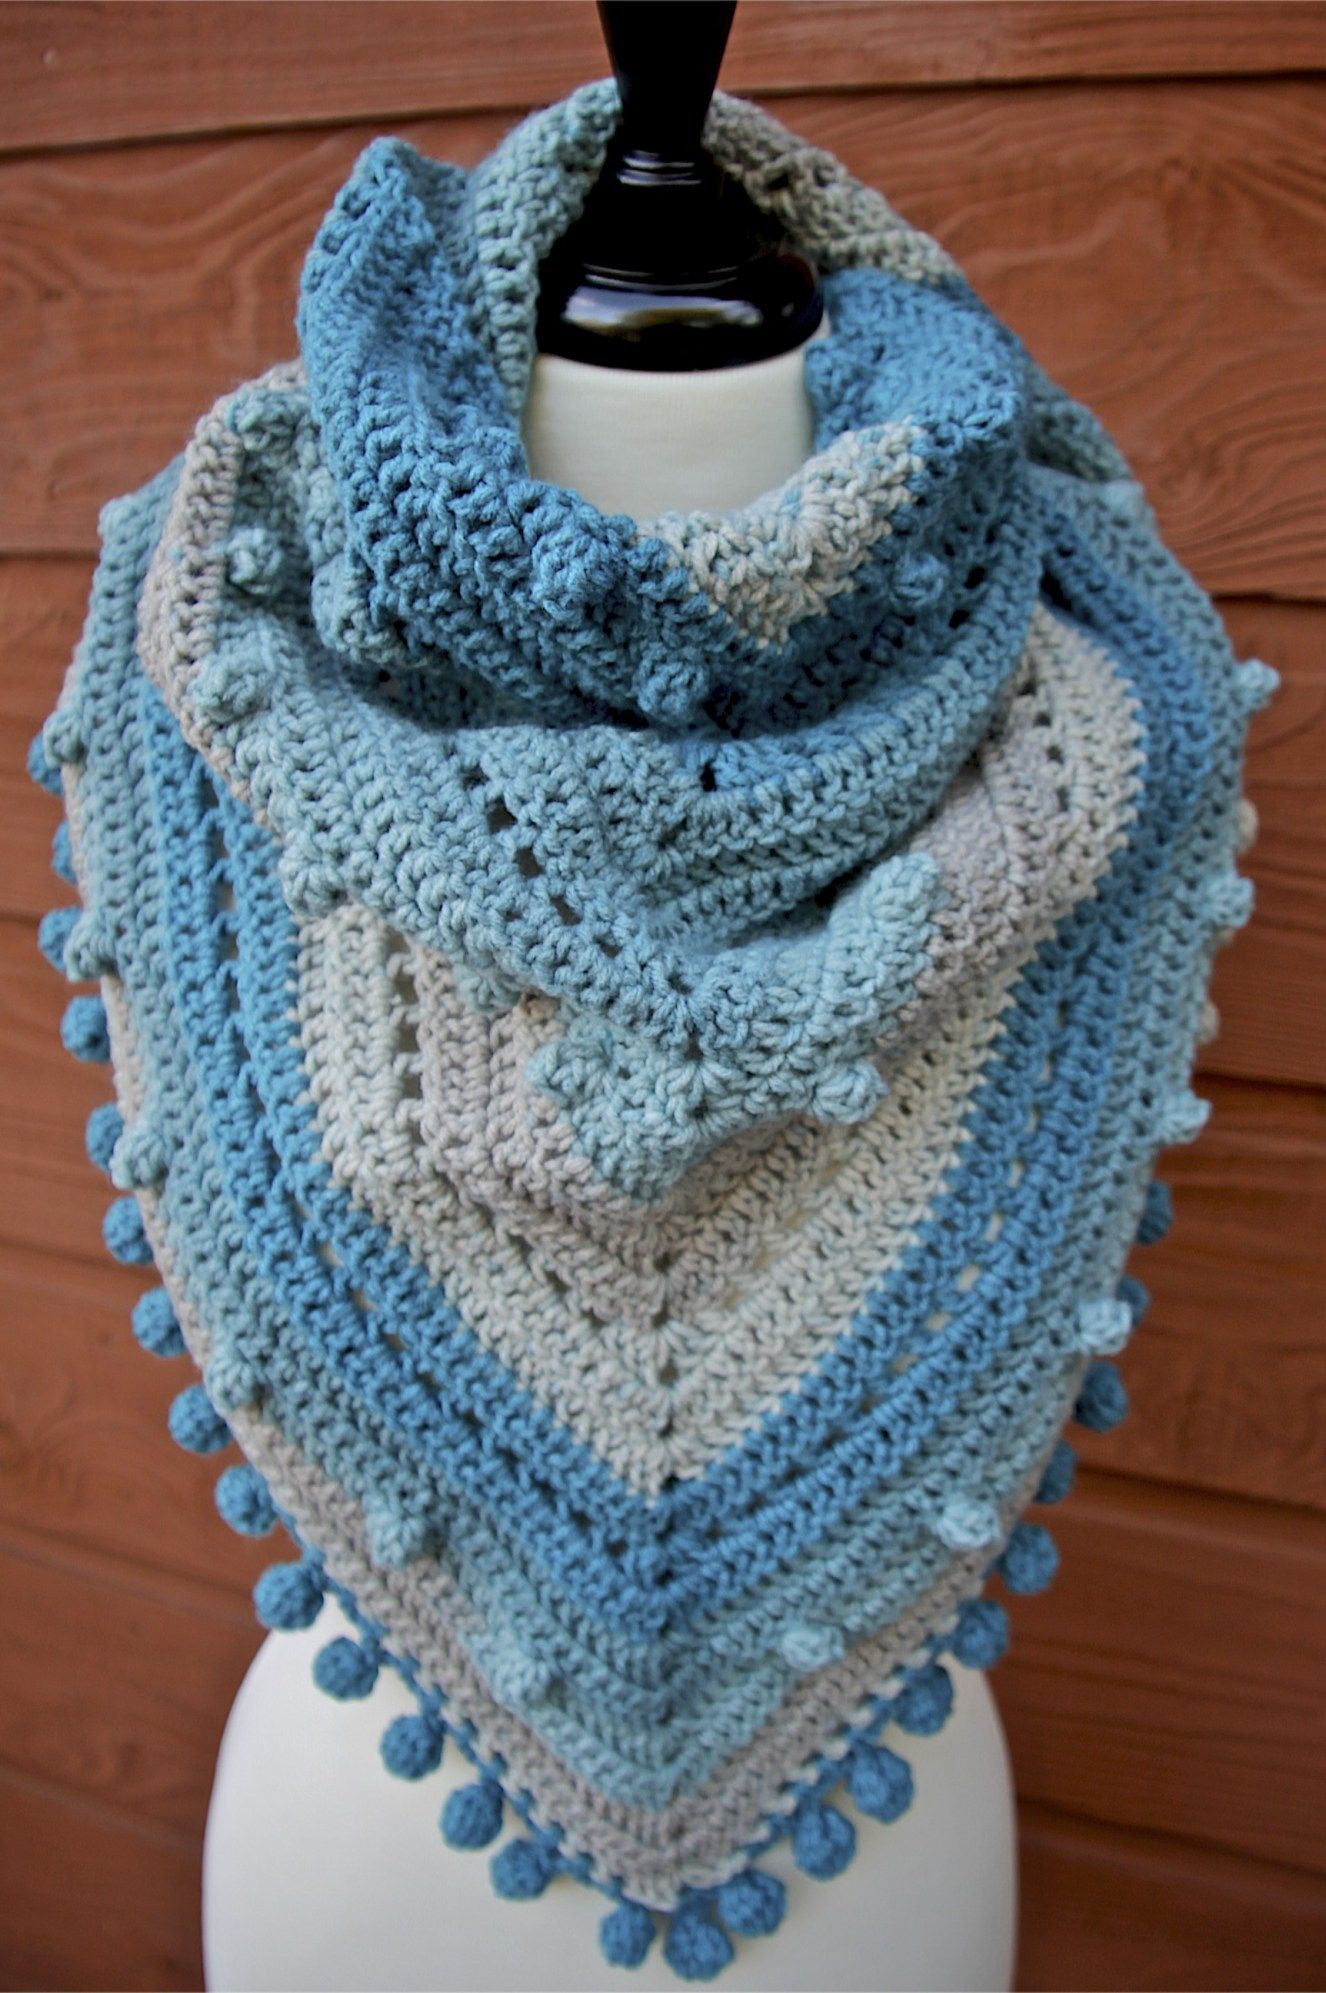 Lovely Misty Morning Triangle Scarf Shawlette Crochet Pattern Caron Big Cakes Patterns Of Awesome 46 Pics Caron Big Cakes Patterns